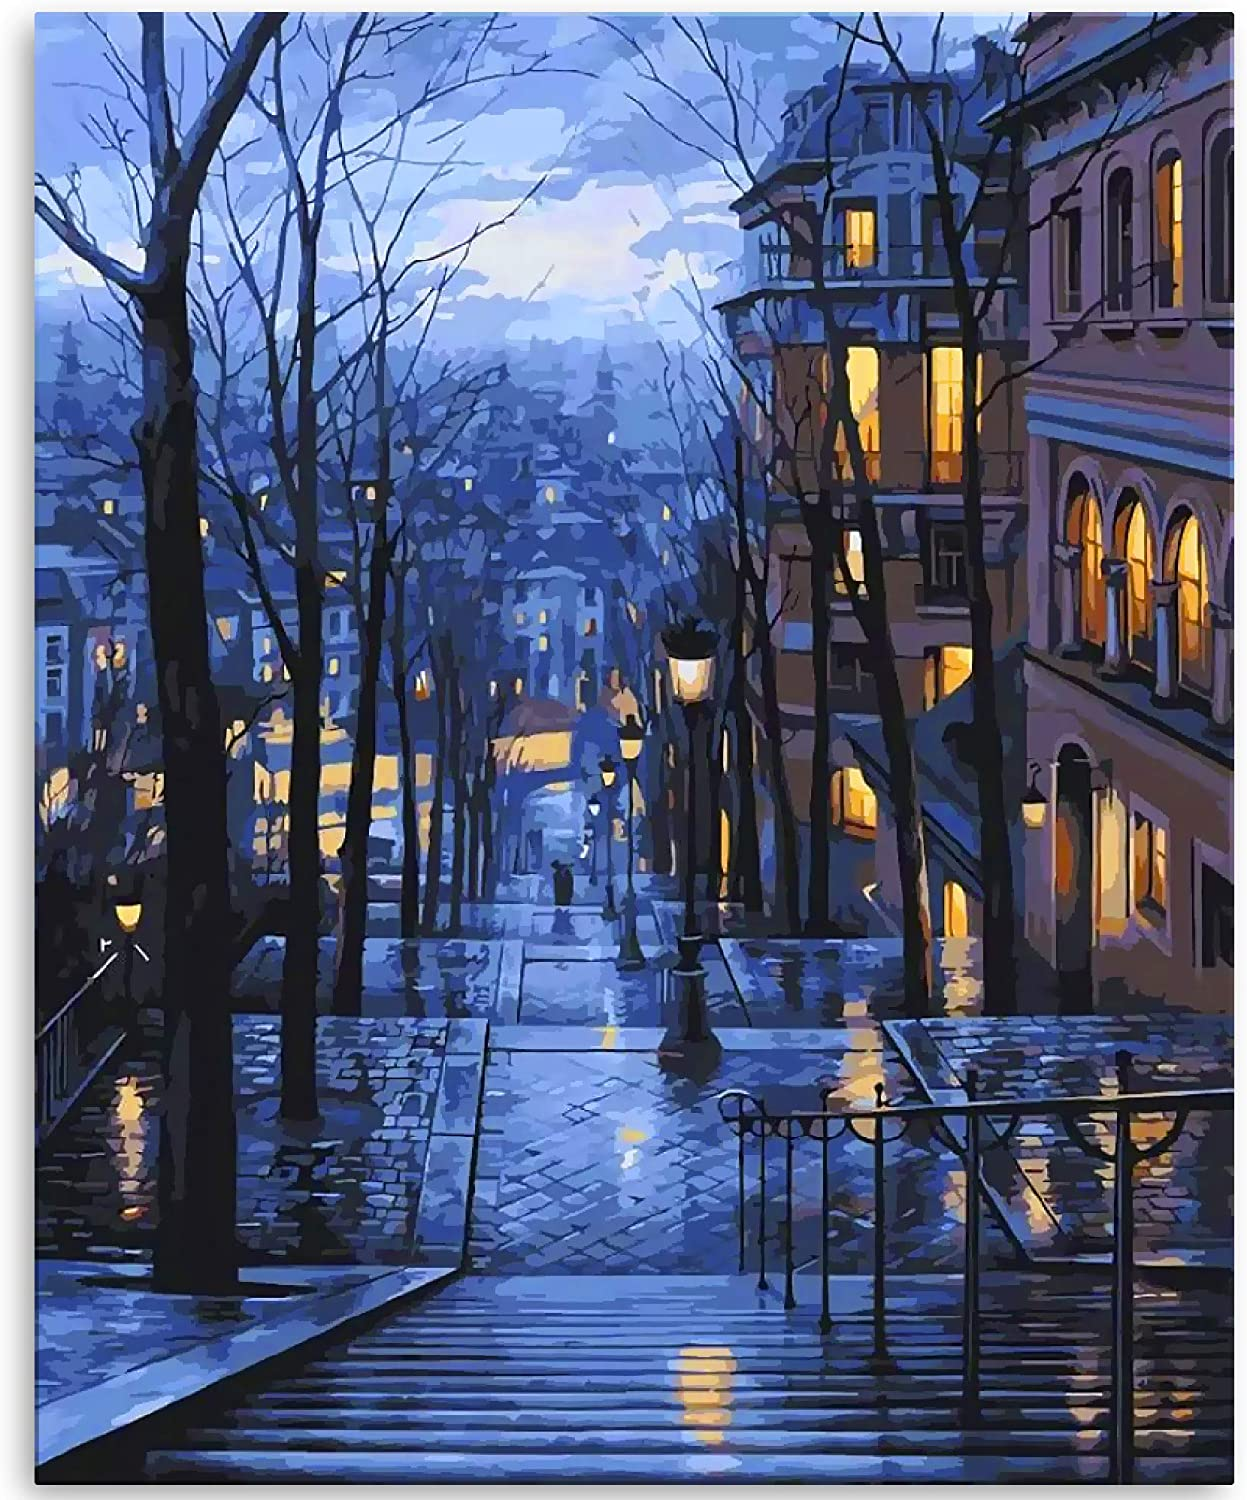 Amazon Com Lin A Lex Diy Paint By Numbers For Adults And Kids Canvas Oil Painting Kit Beginners 16 X 20 Inch Arts Craft Home Charming Winter Cityscape Crafts Sewing